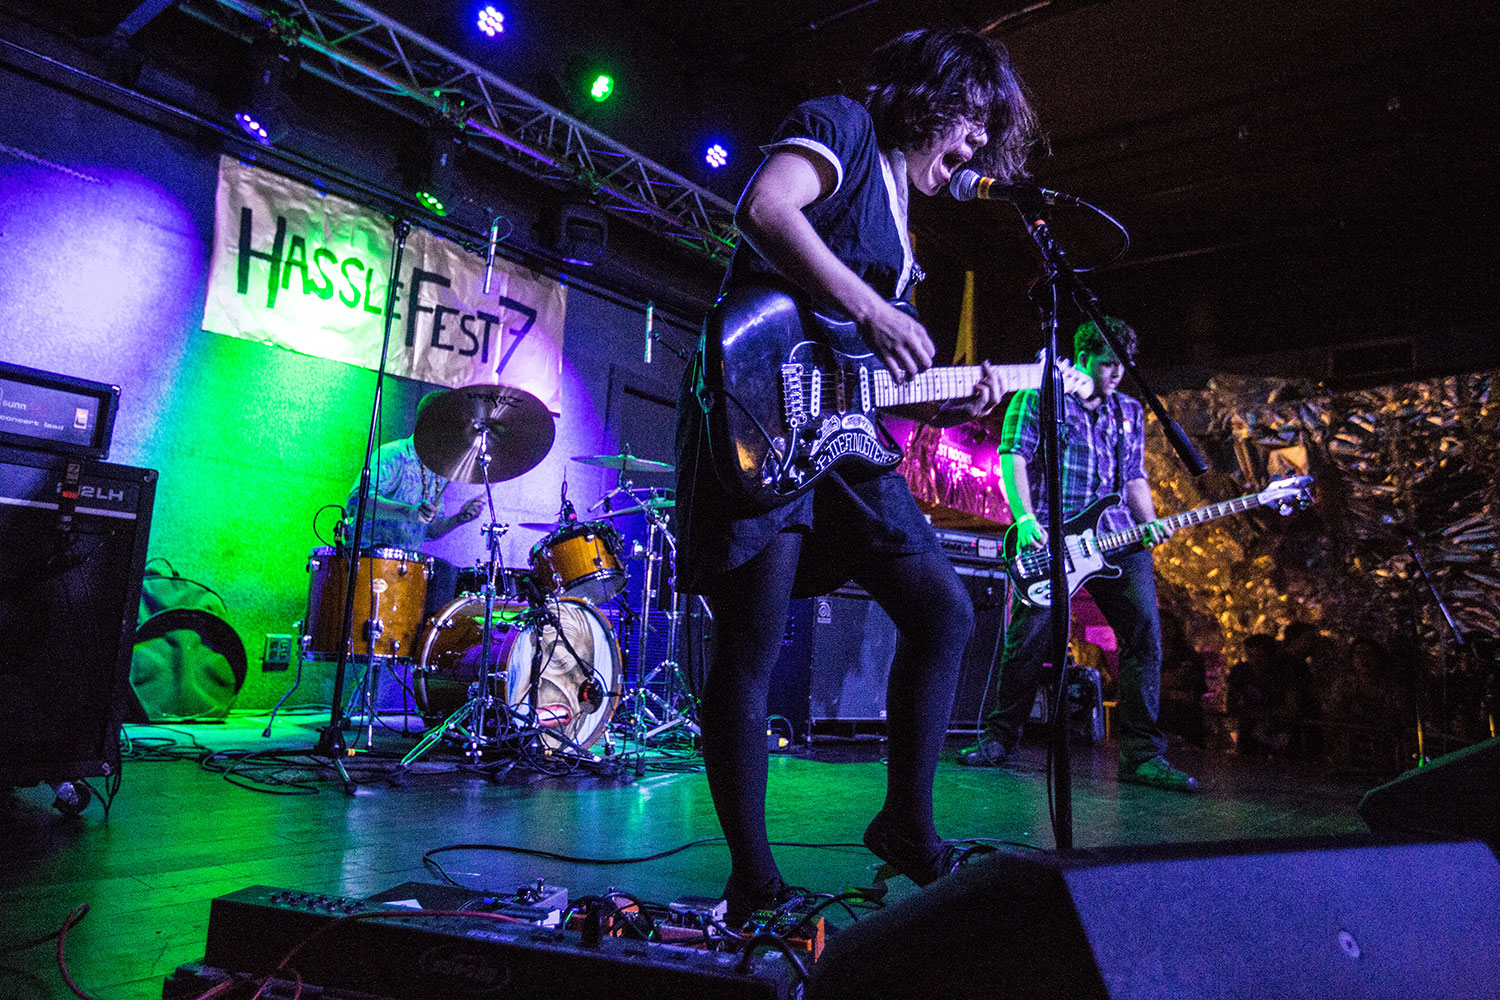 Screaming Females performed at HassleFest 7 in 2015. (Courtesy Ben Stas)